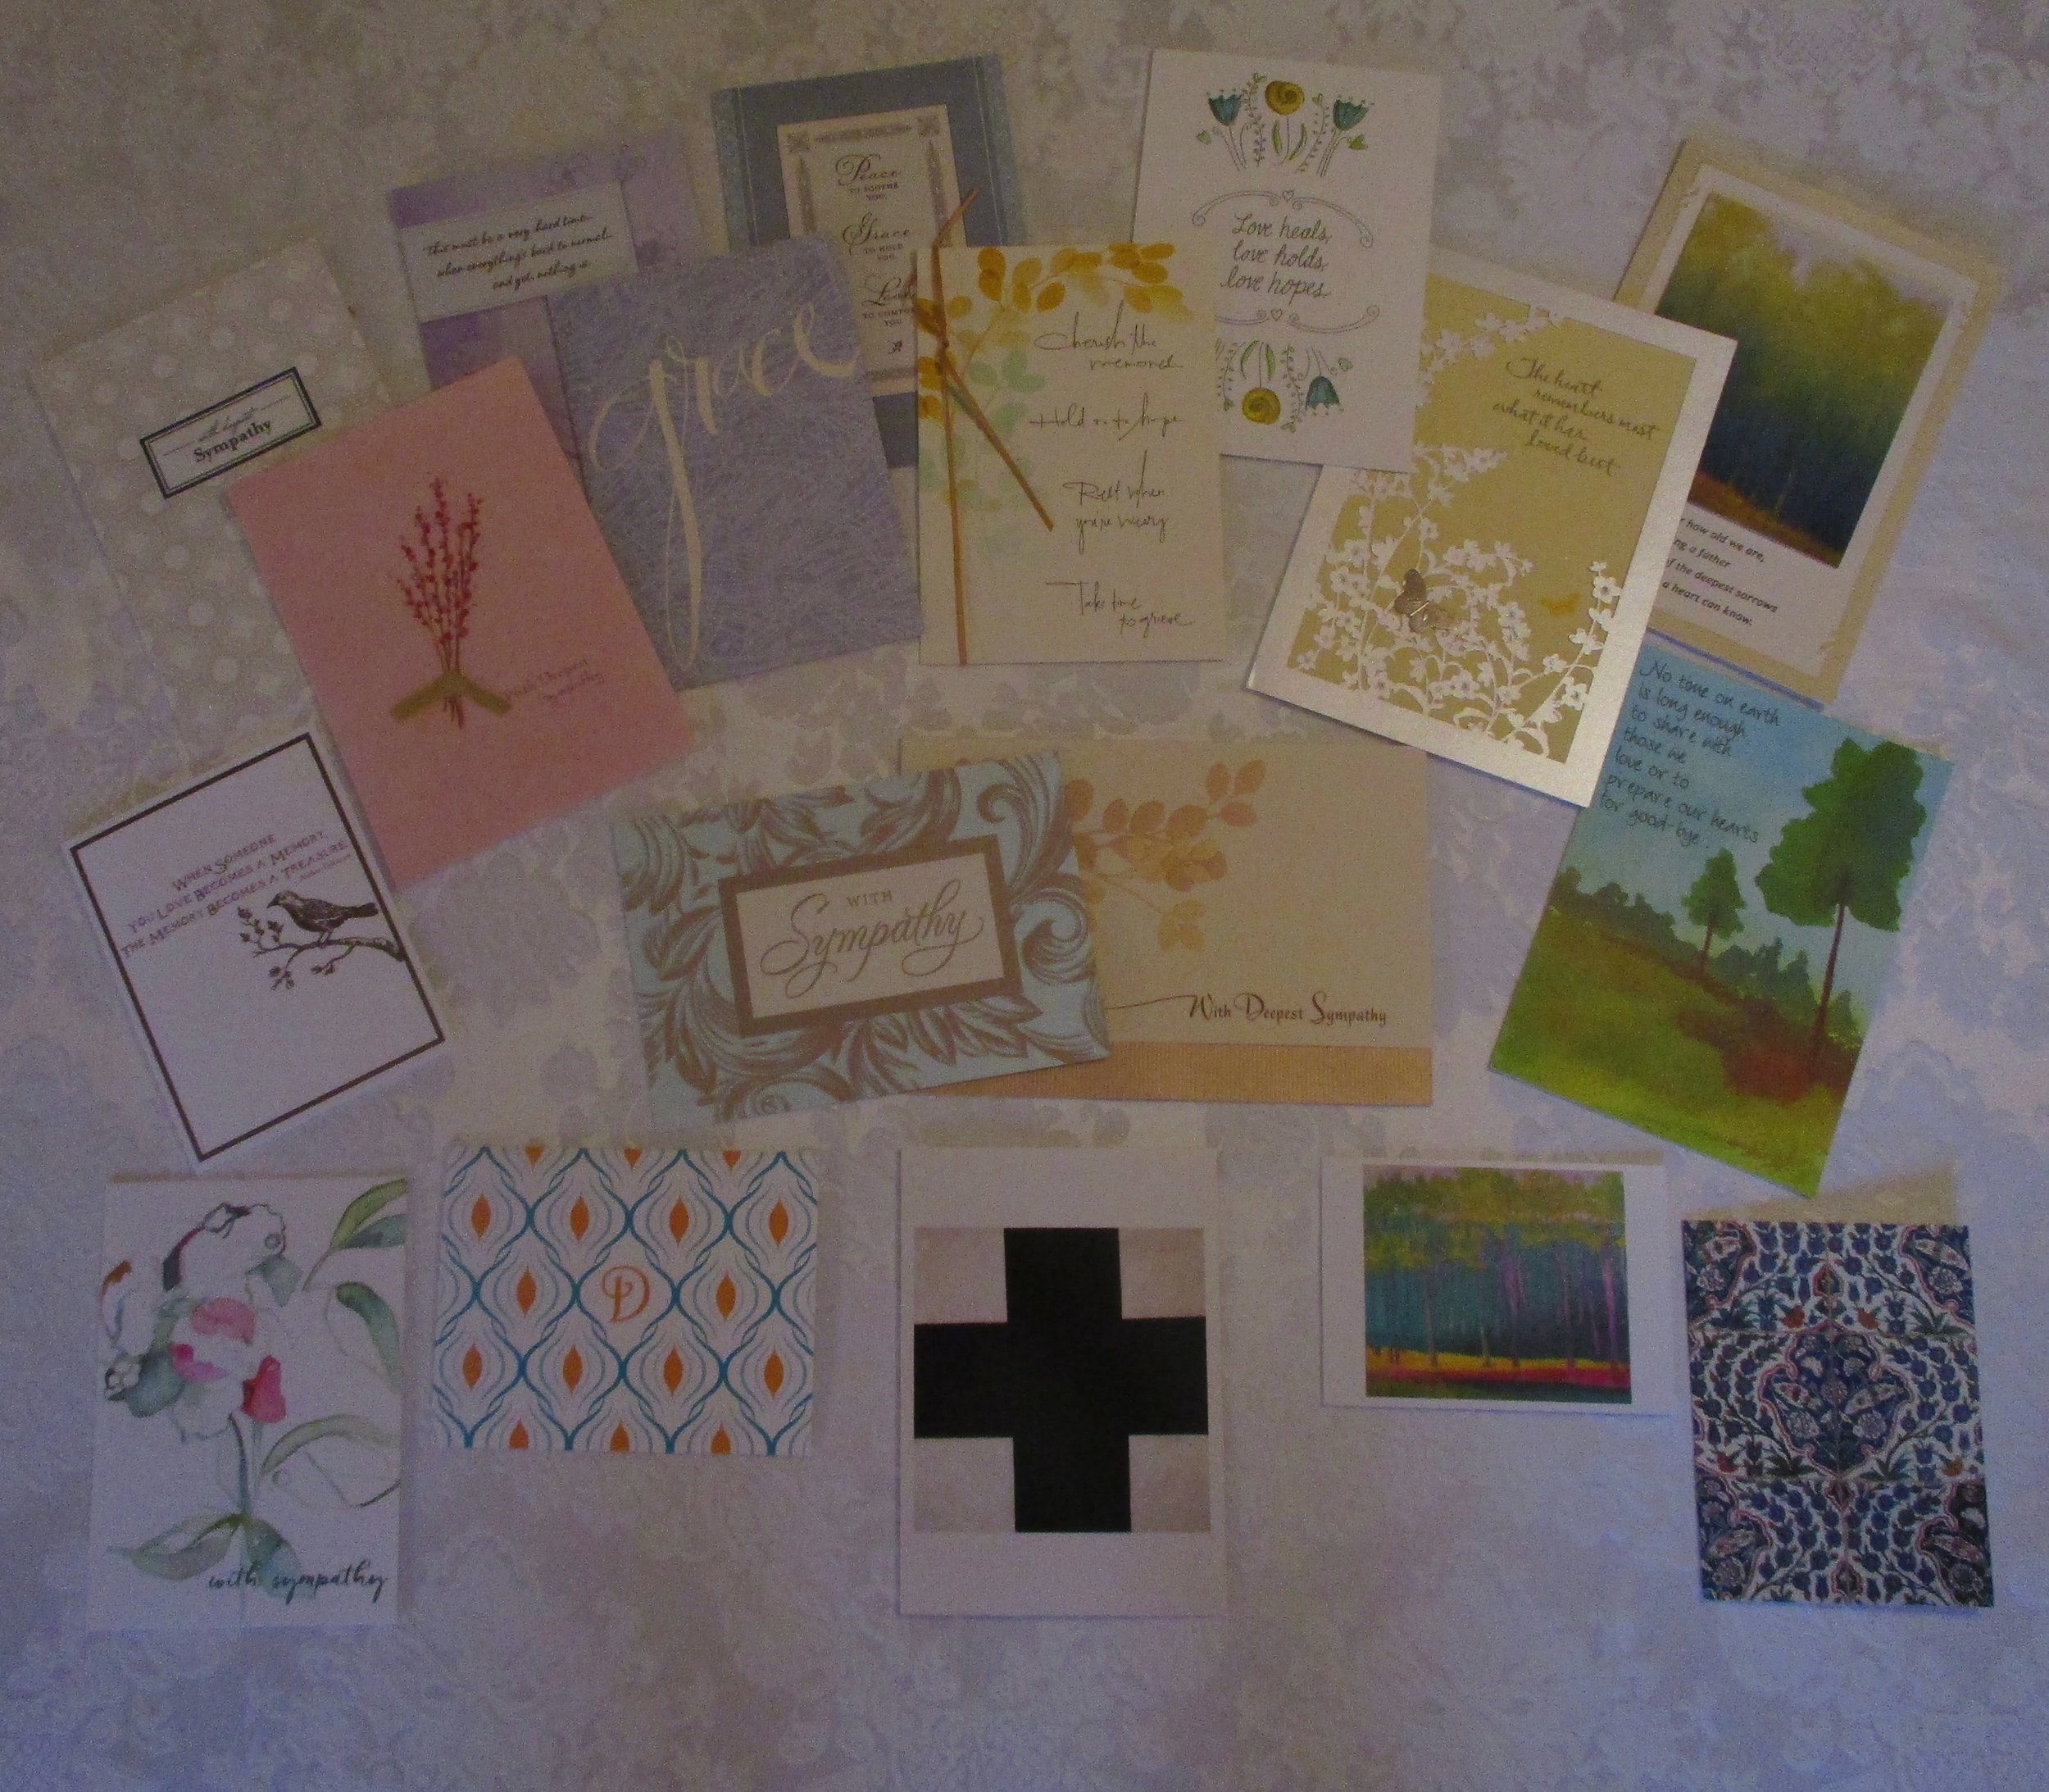 A sampling of recently received condolence cards.